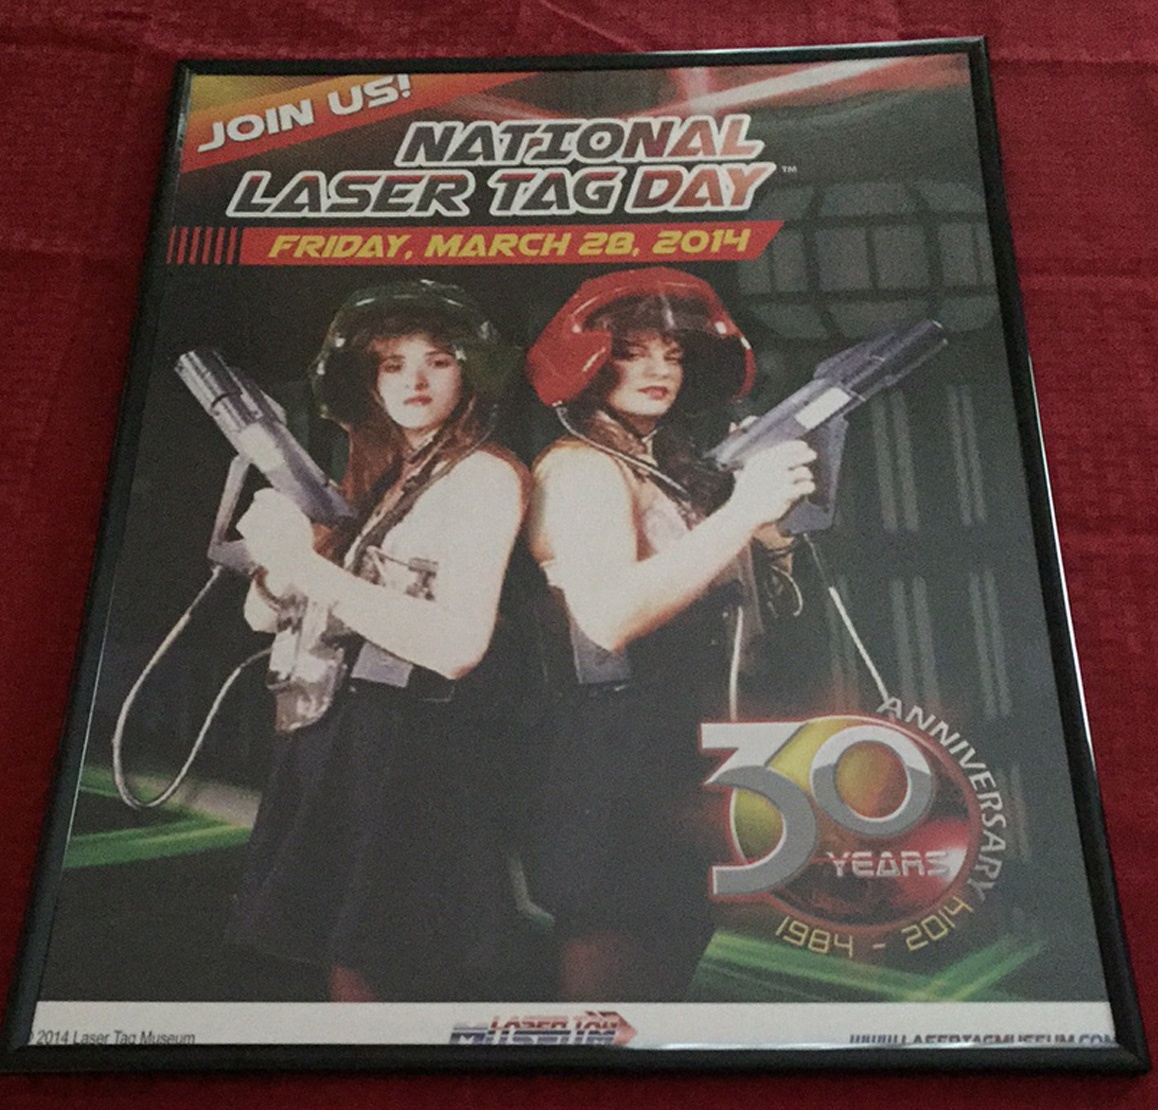 2014 Laser Tag Day Poster